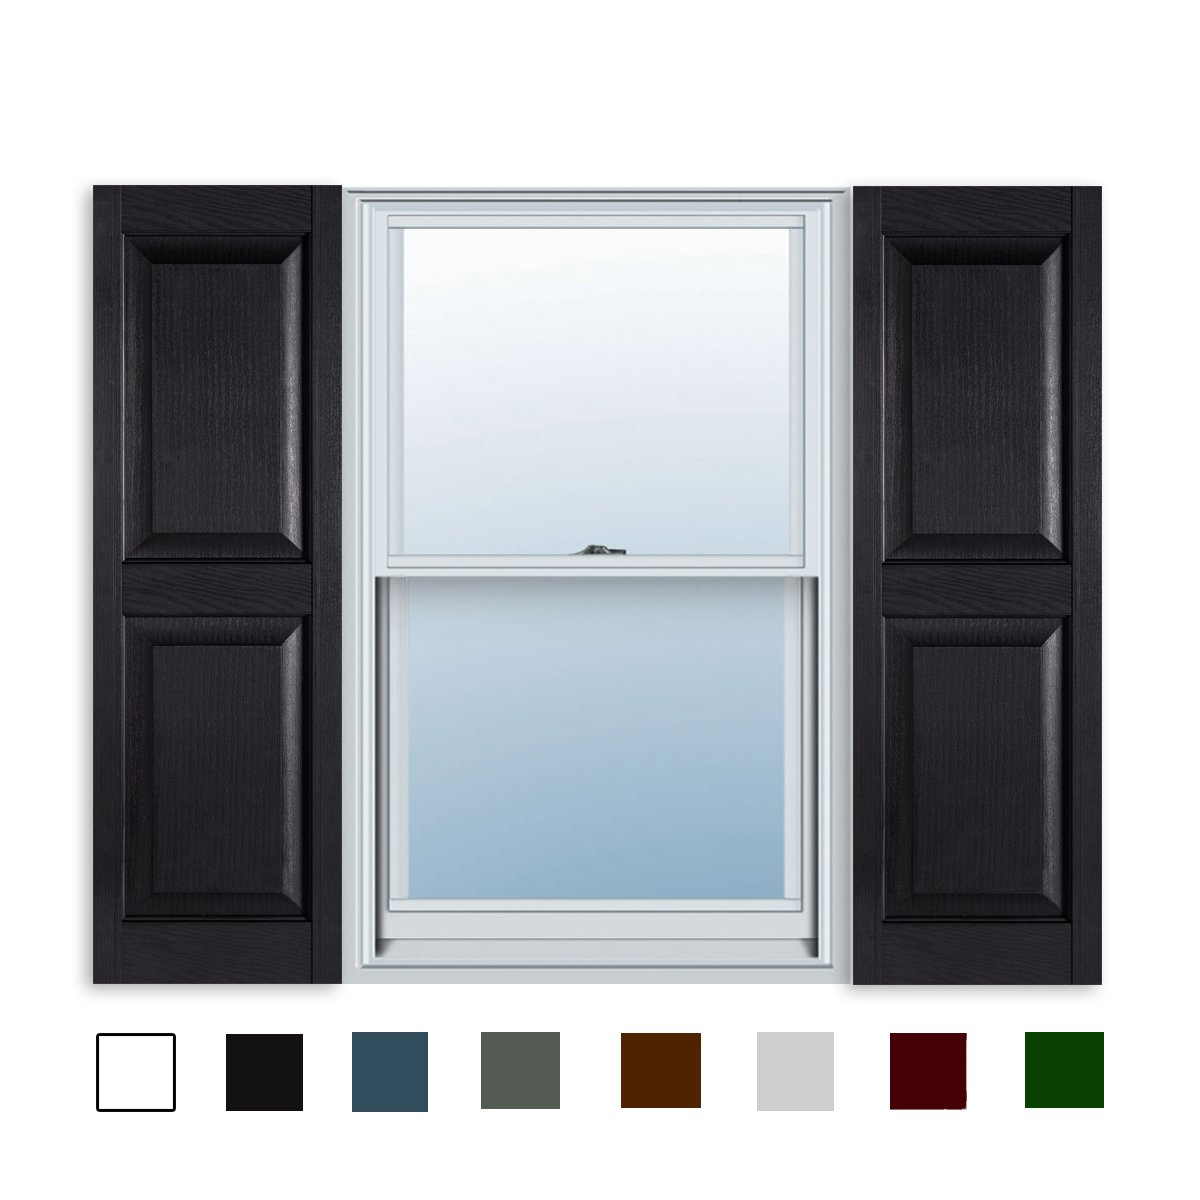 15 Inch x 55 Inch Standard Raised Panel Exterior Vinyl Shutters, Black (Pair) by ExteriorSolutions.com